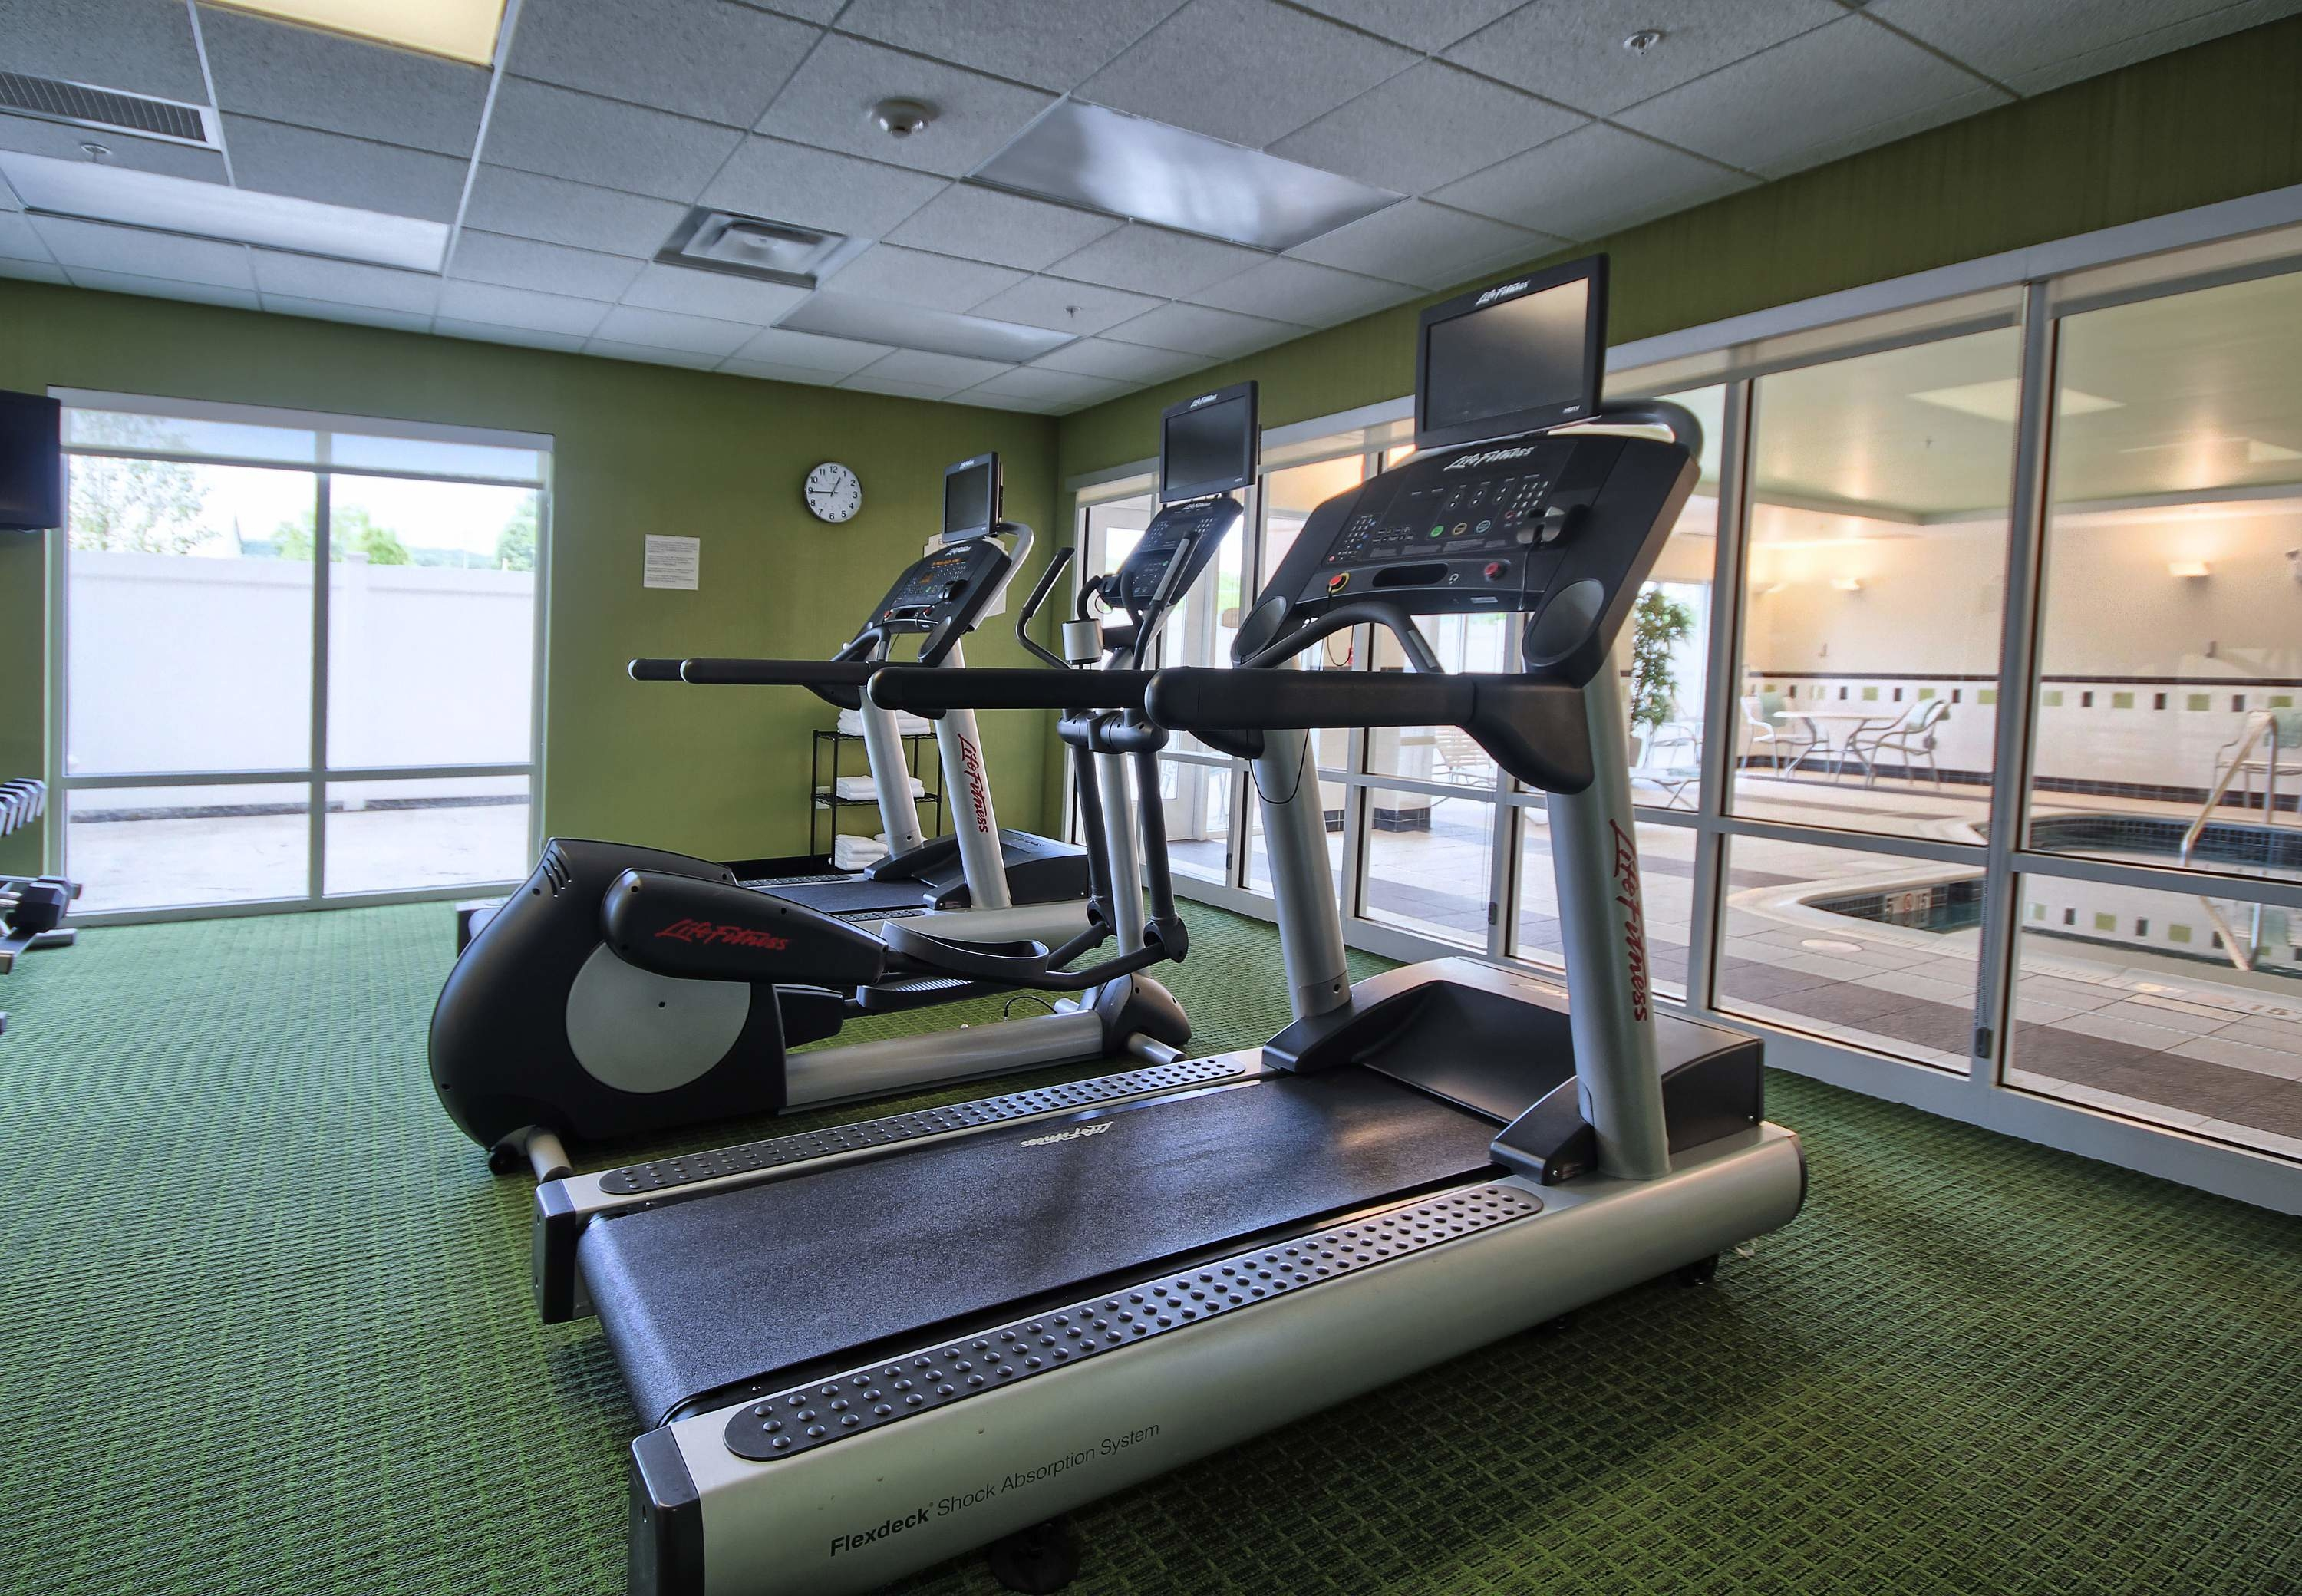 Fairfield Inn & Suites by Marriott Huntingdon Route 22/Raystown Lake image 6